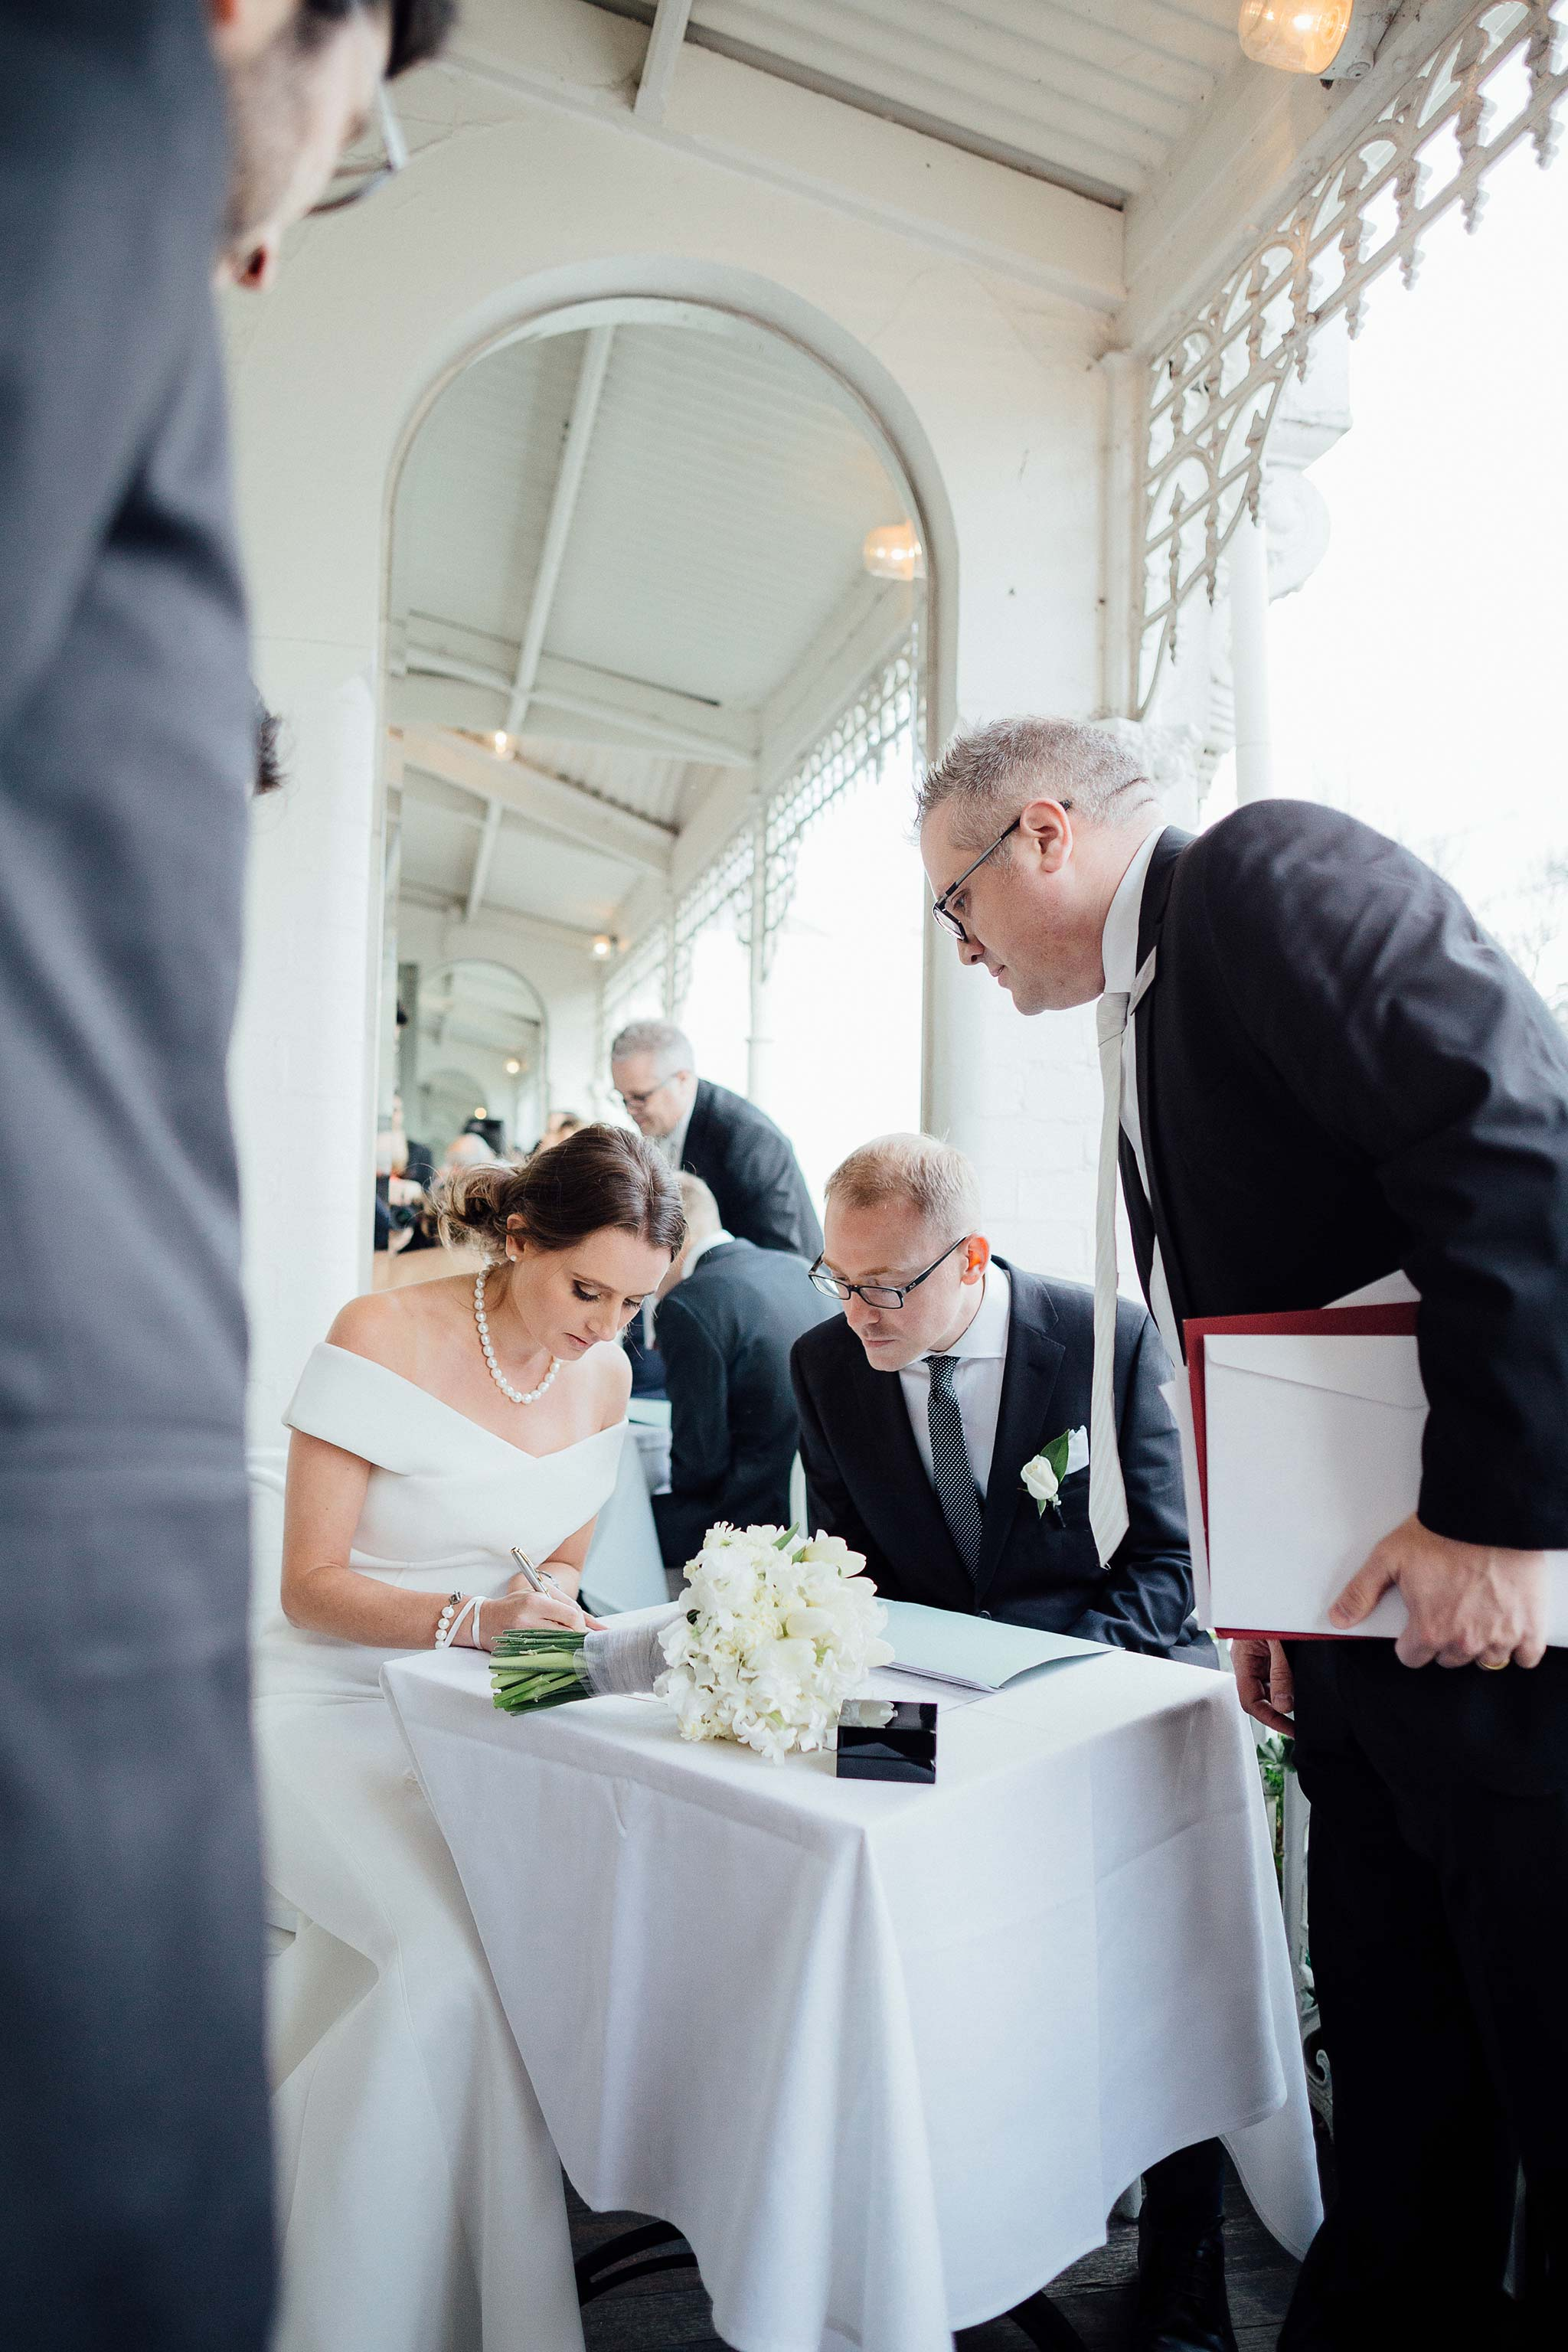 melbourne-entrecote-wedding-ceremony-signing